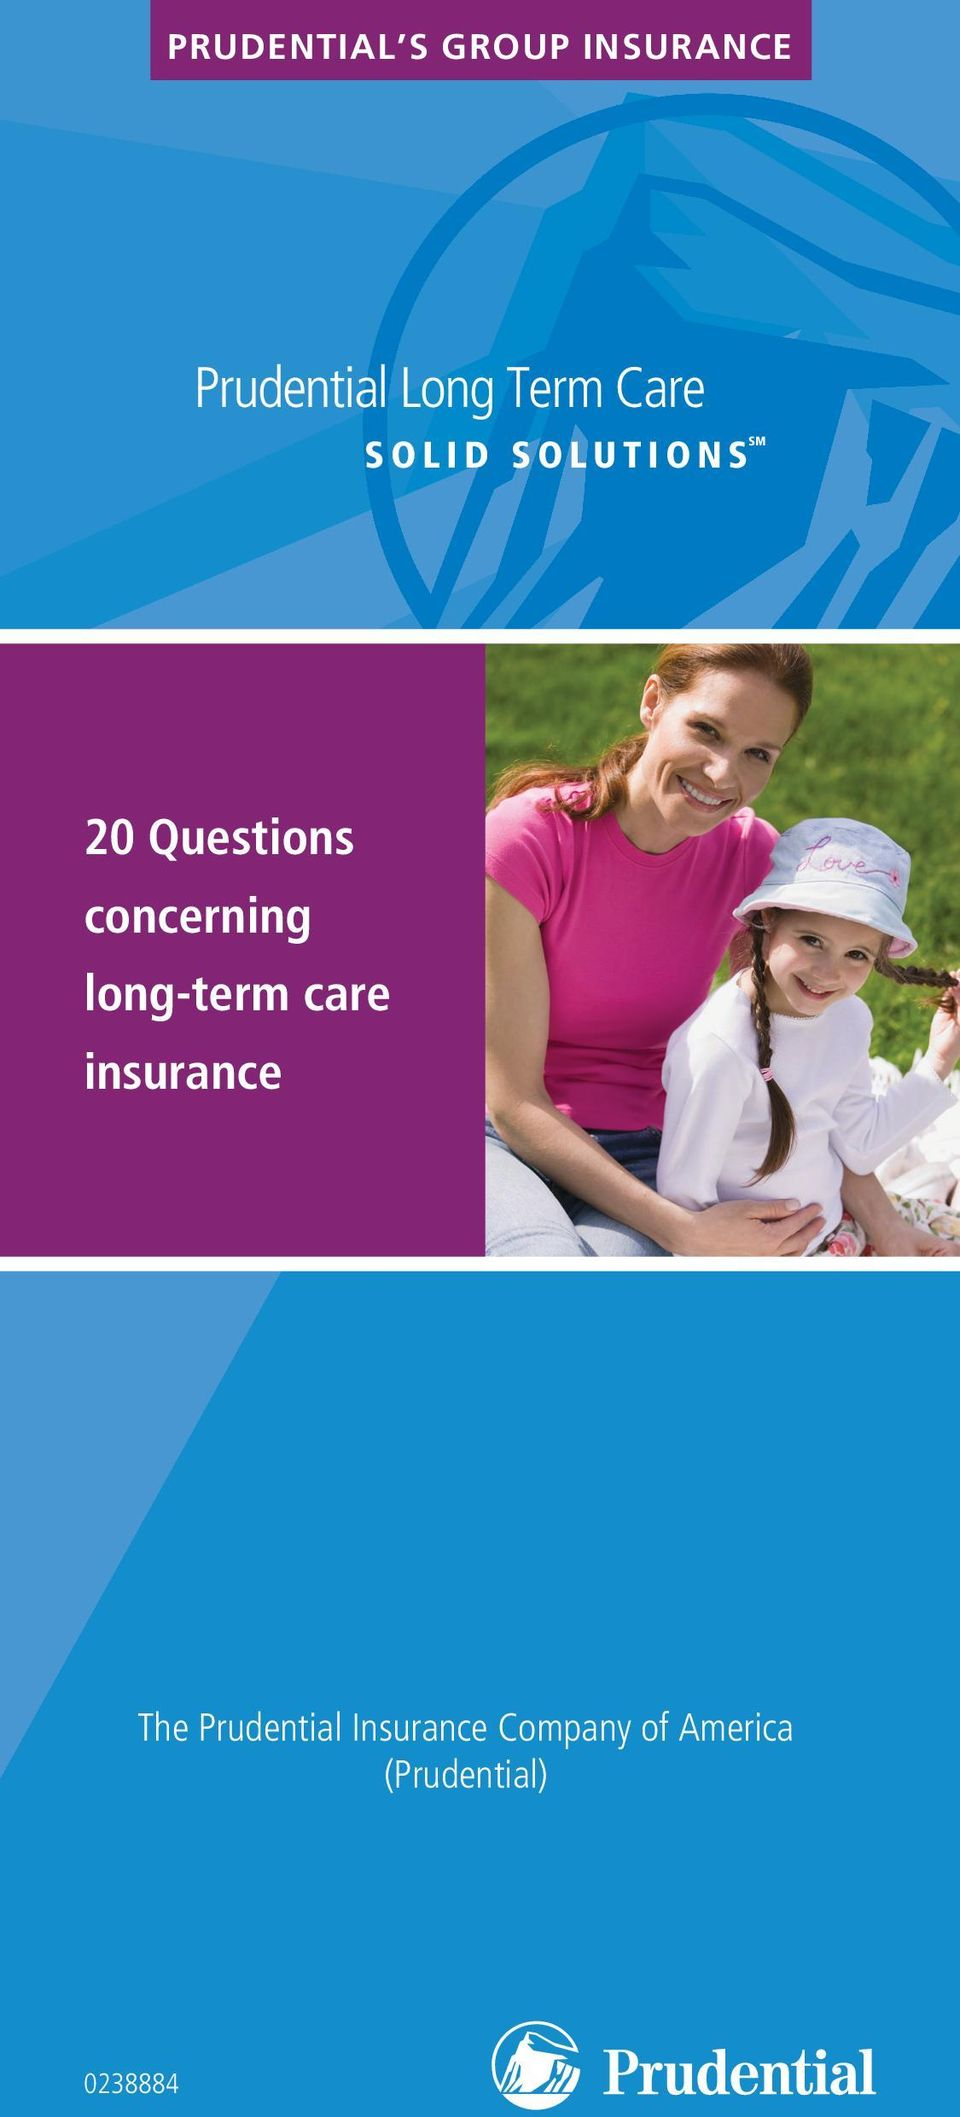 concerning long-term care insurance The